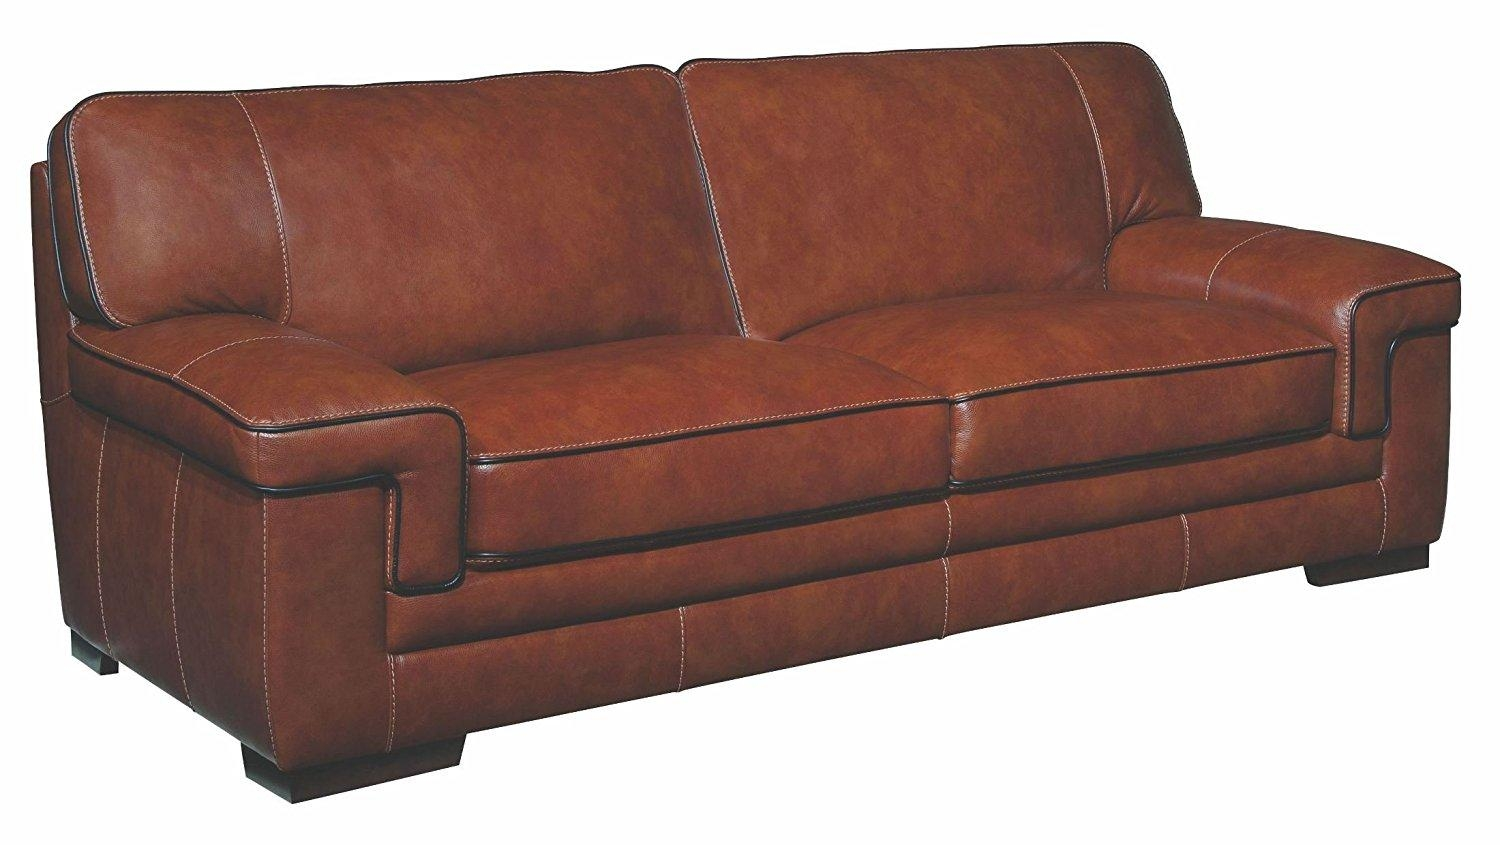 Sofas Center : Sectional Sleeper Sofa Costco Cleanupflorida Com In Stacey Leather Sectional (Image 15 of 20)